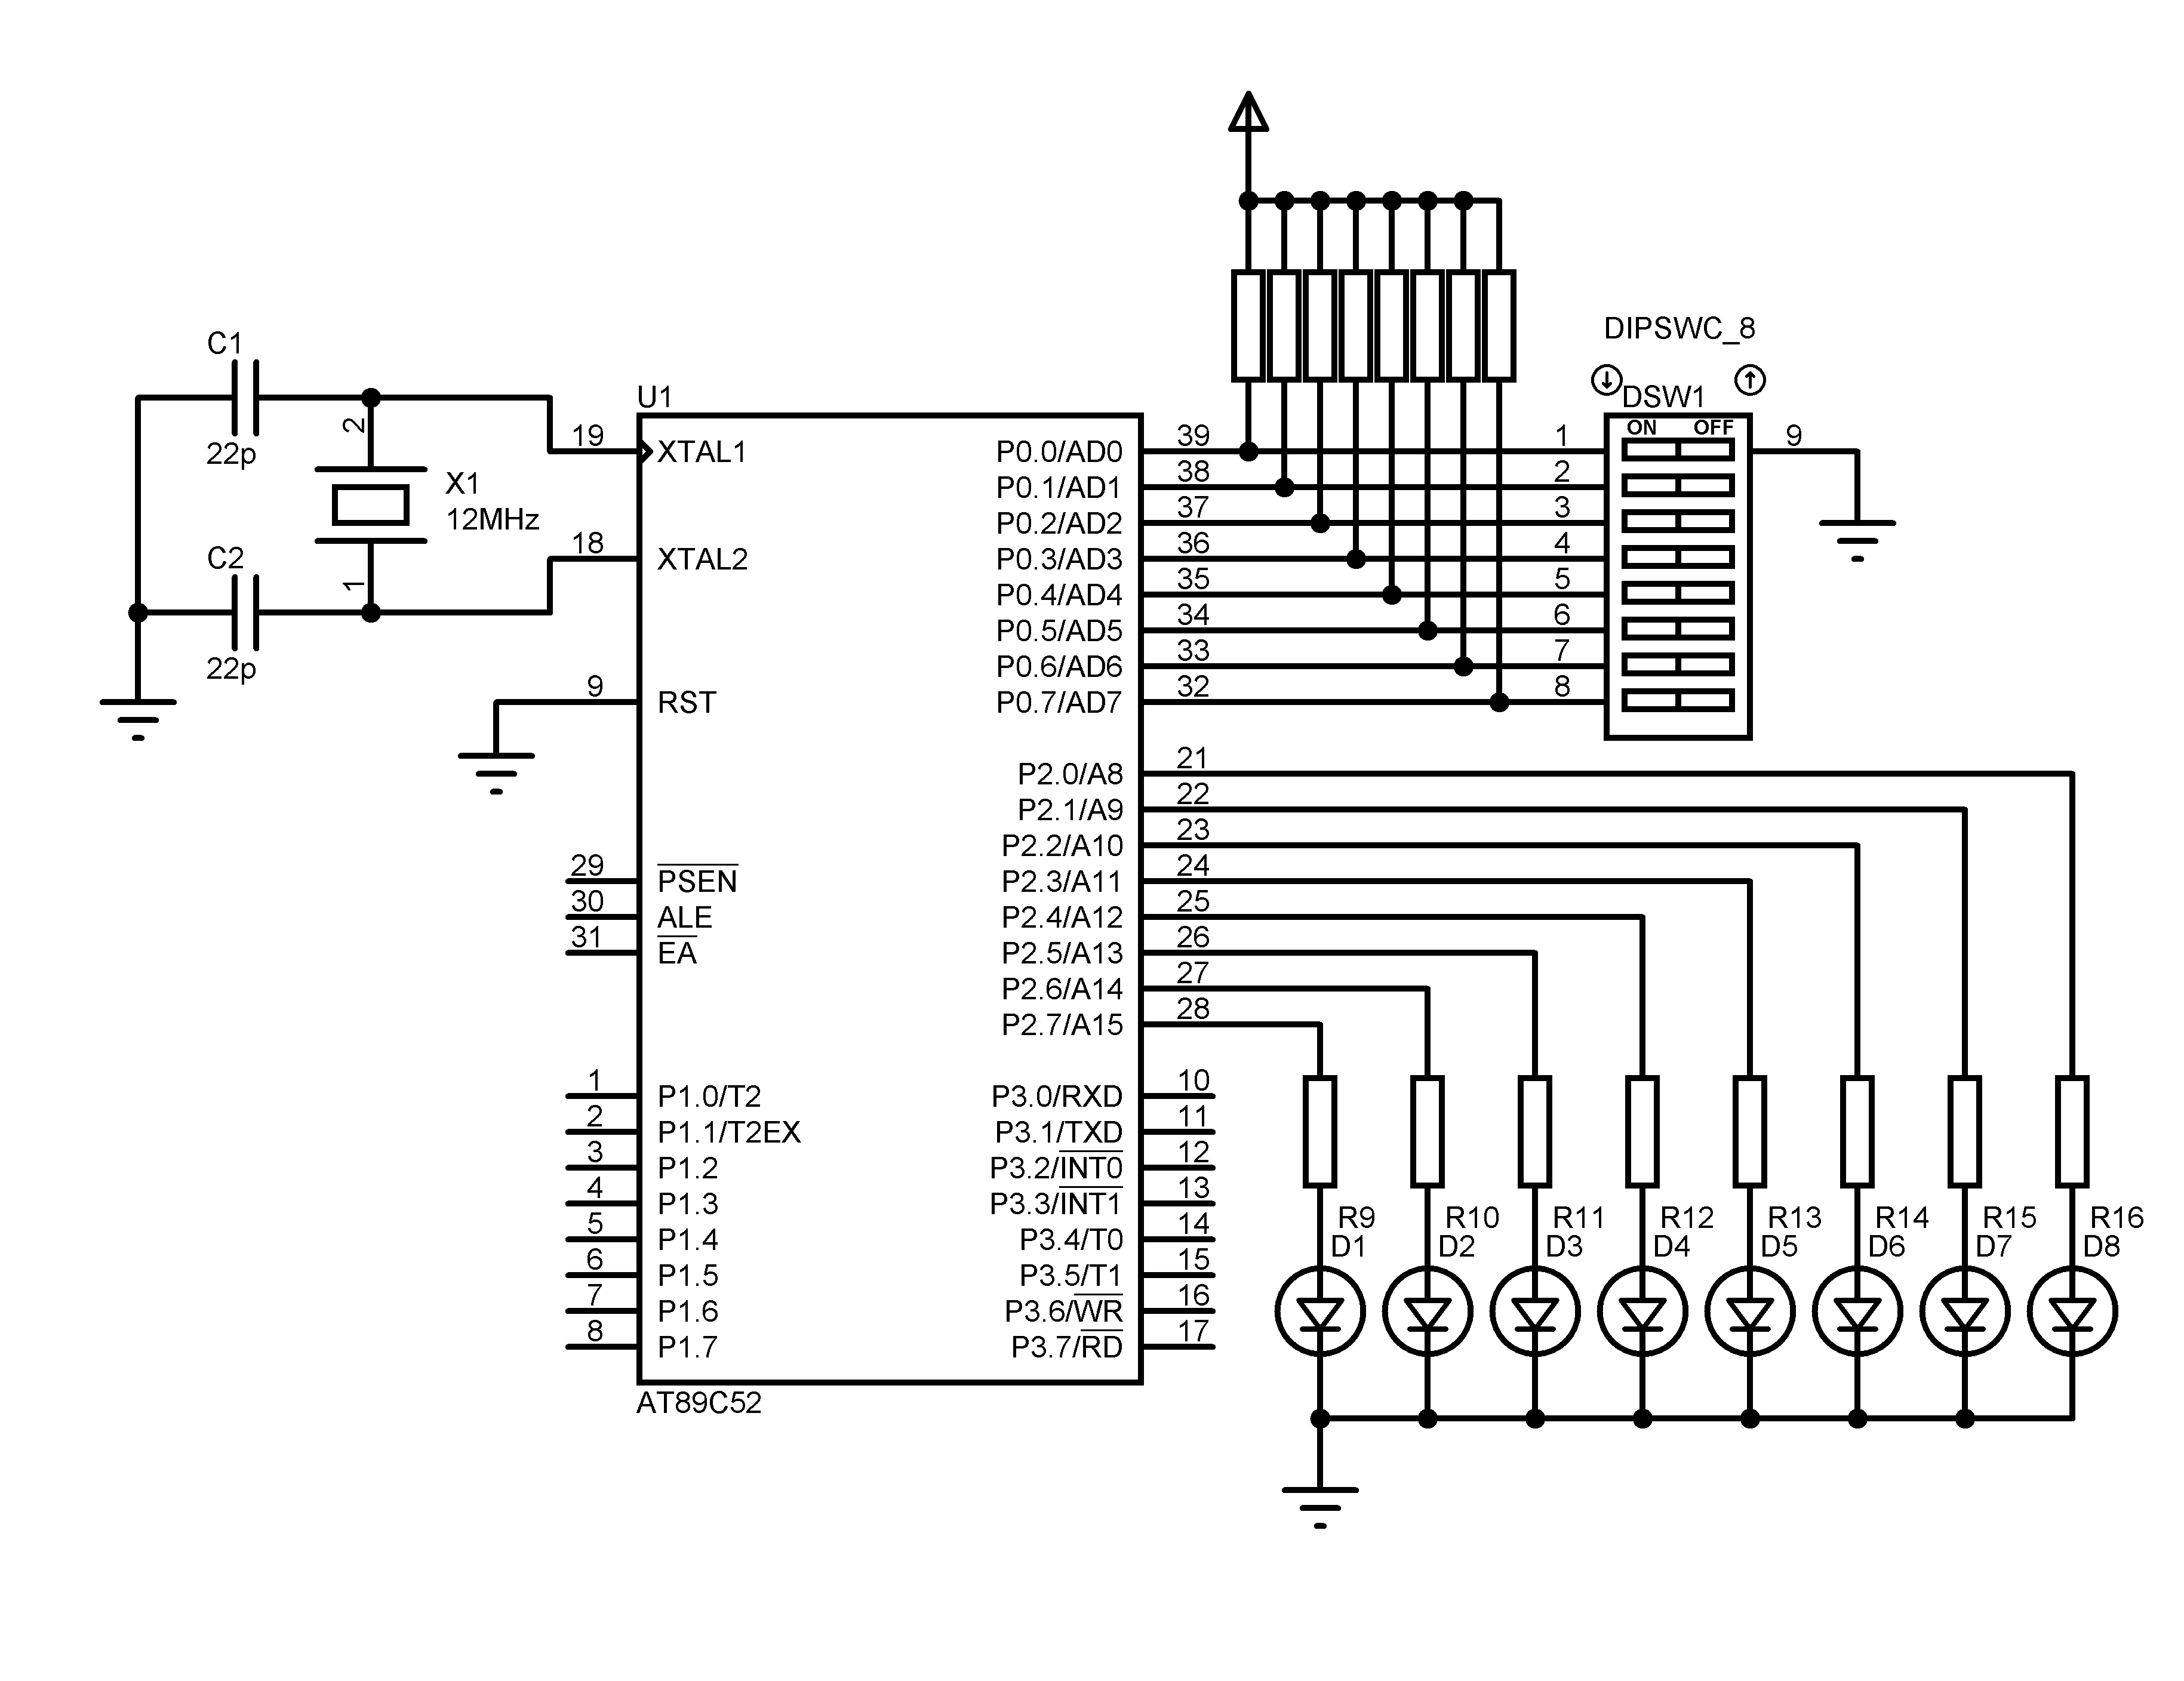 small resolution of 8051 i o port programming using keil c with at89s52 simulation on crystal oscillator diagram for at89s52